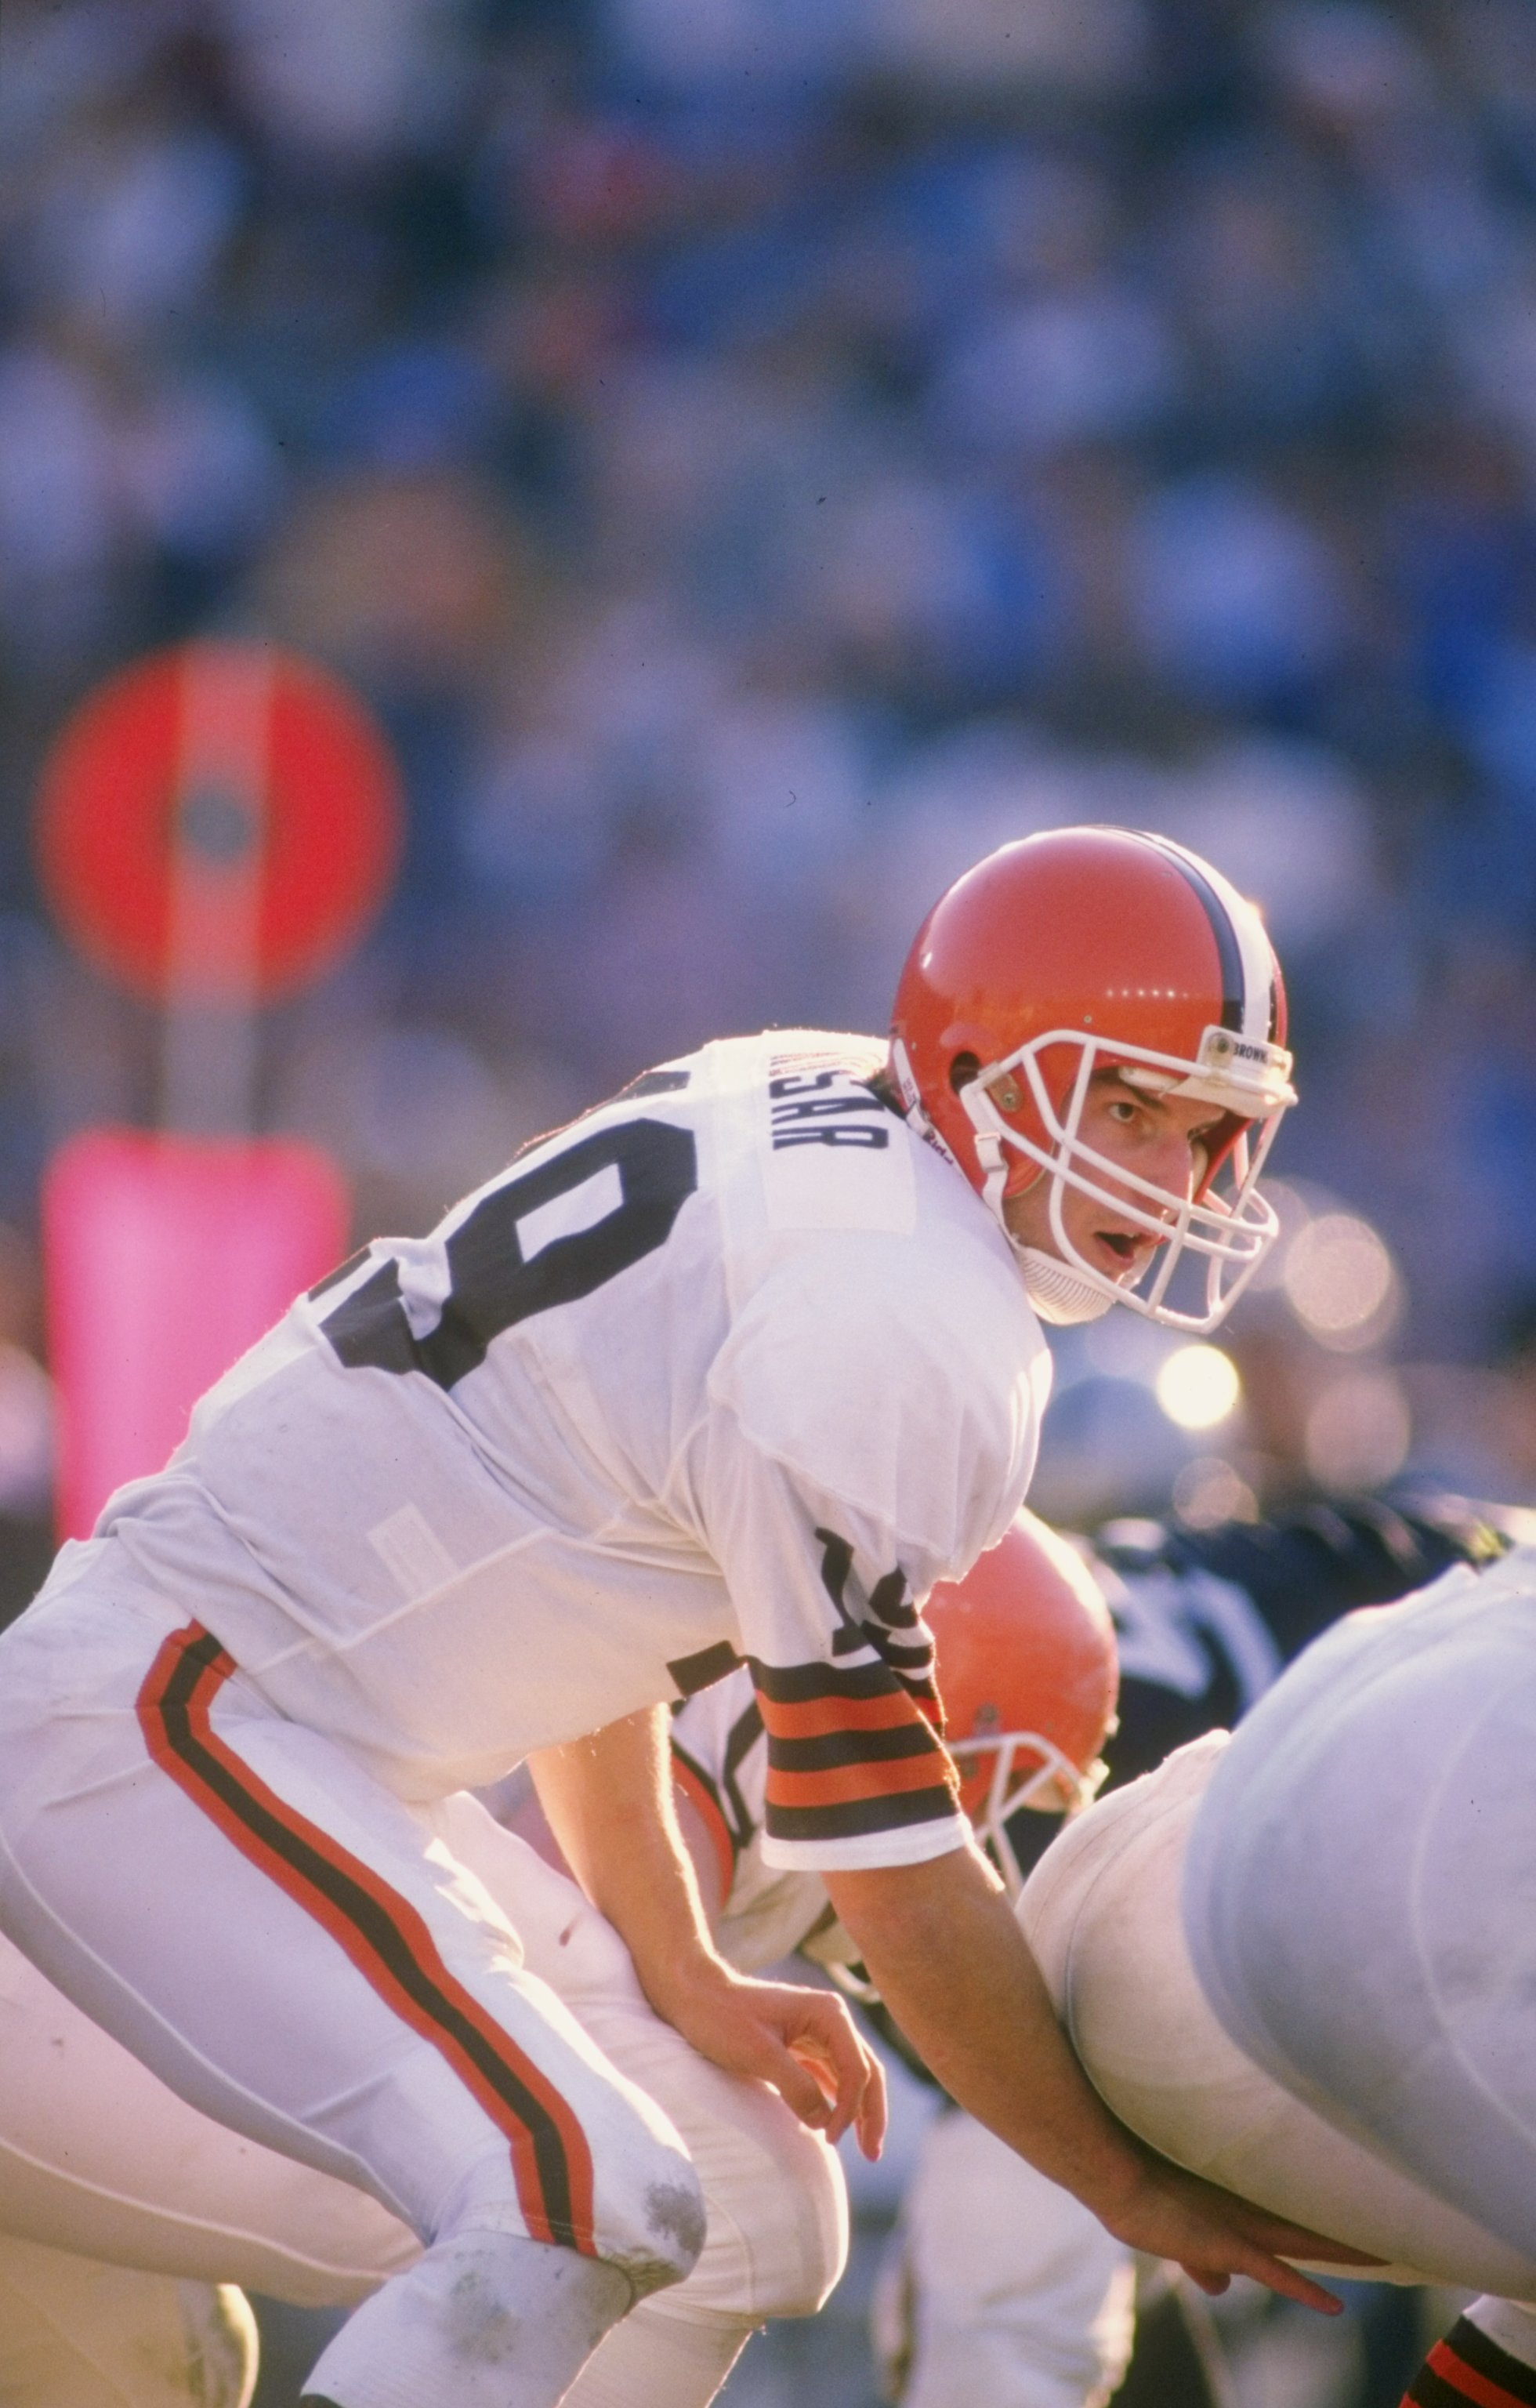 Quarterback Bernie Kosar of the Cleveland Browns calls signals at the line during a game against the Los Angeles Raiders at the Los Angeles Memorial Coliseum in Los Angeles, California. The Browns won the game 24-17.